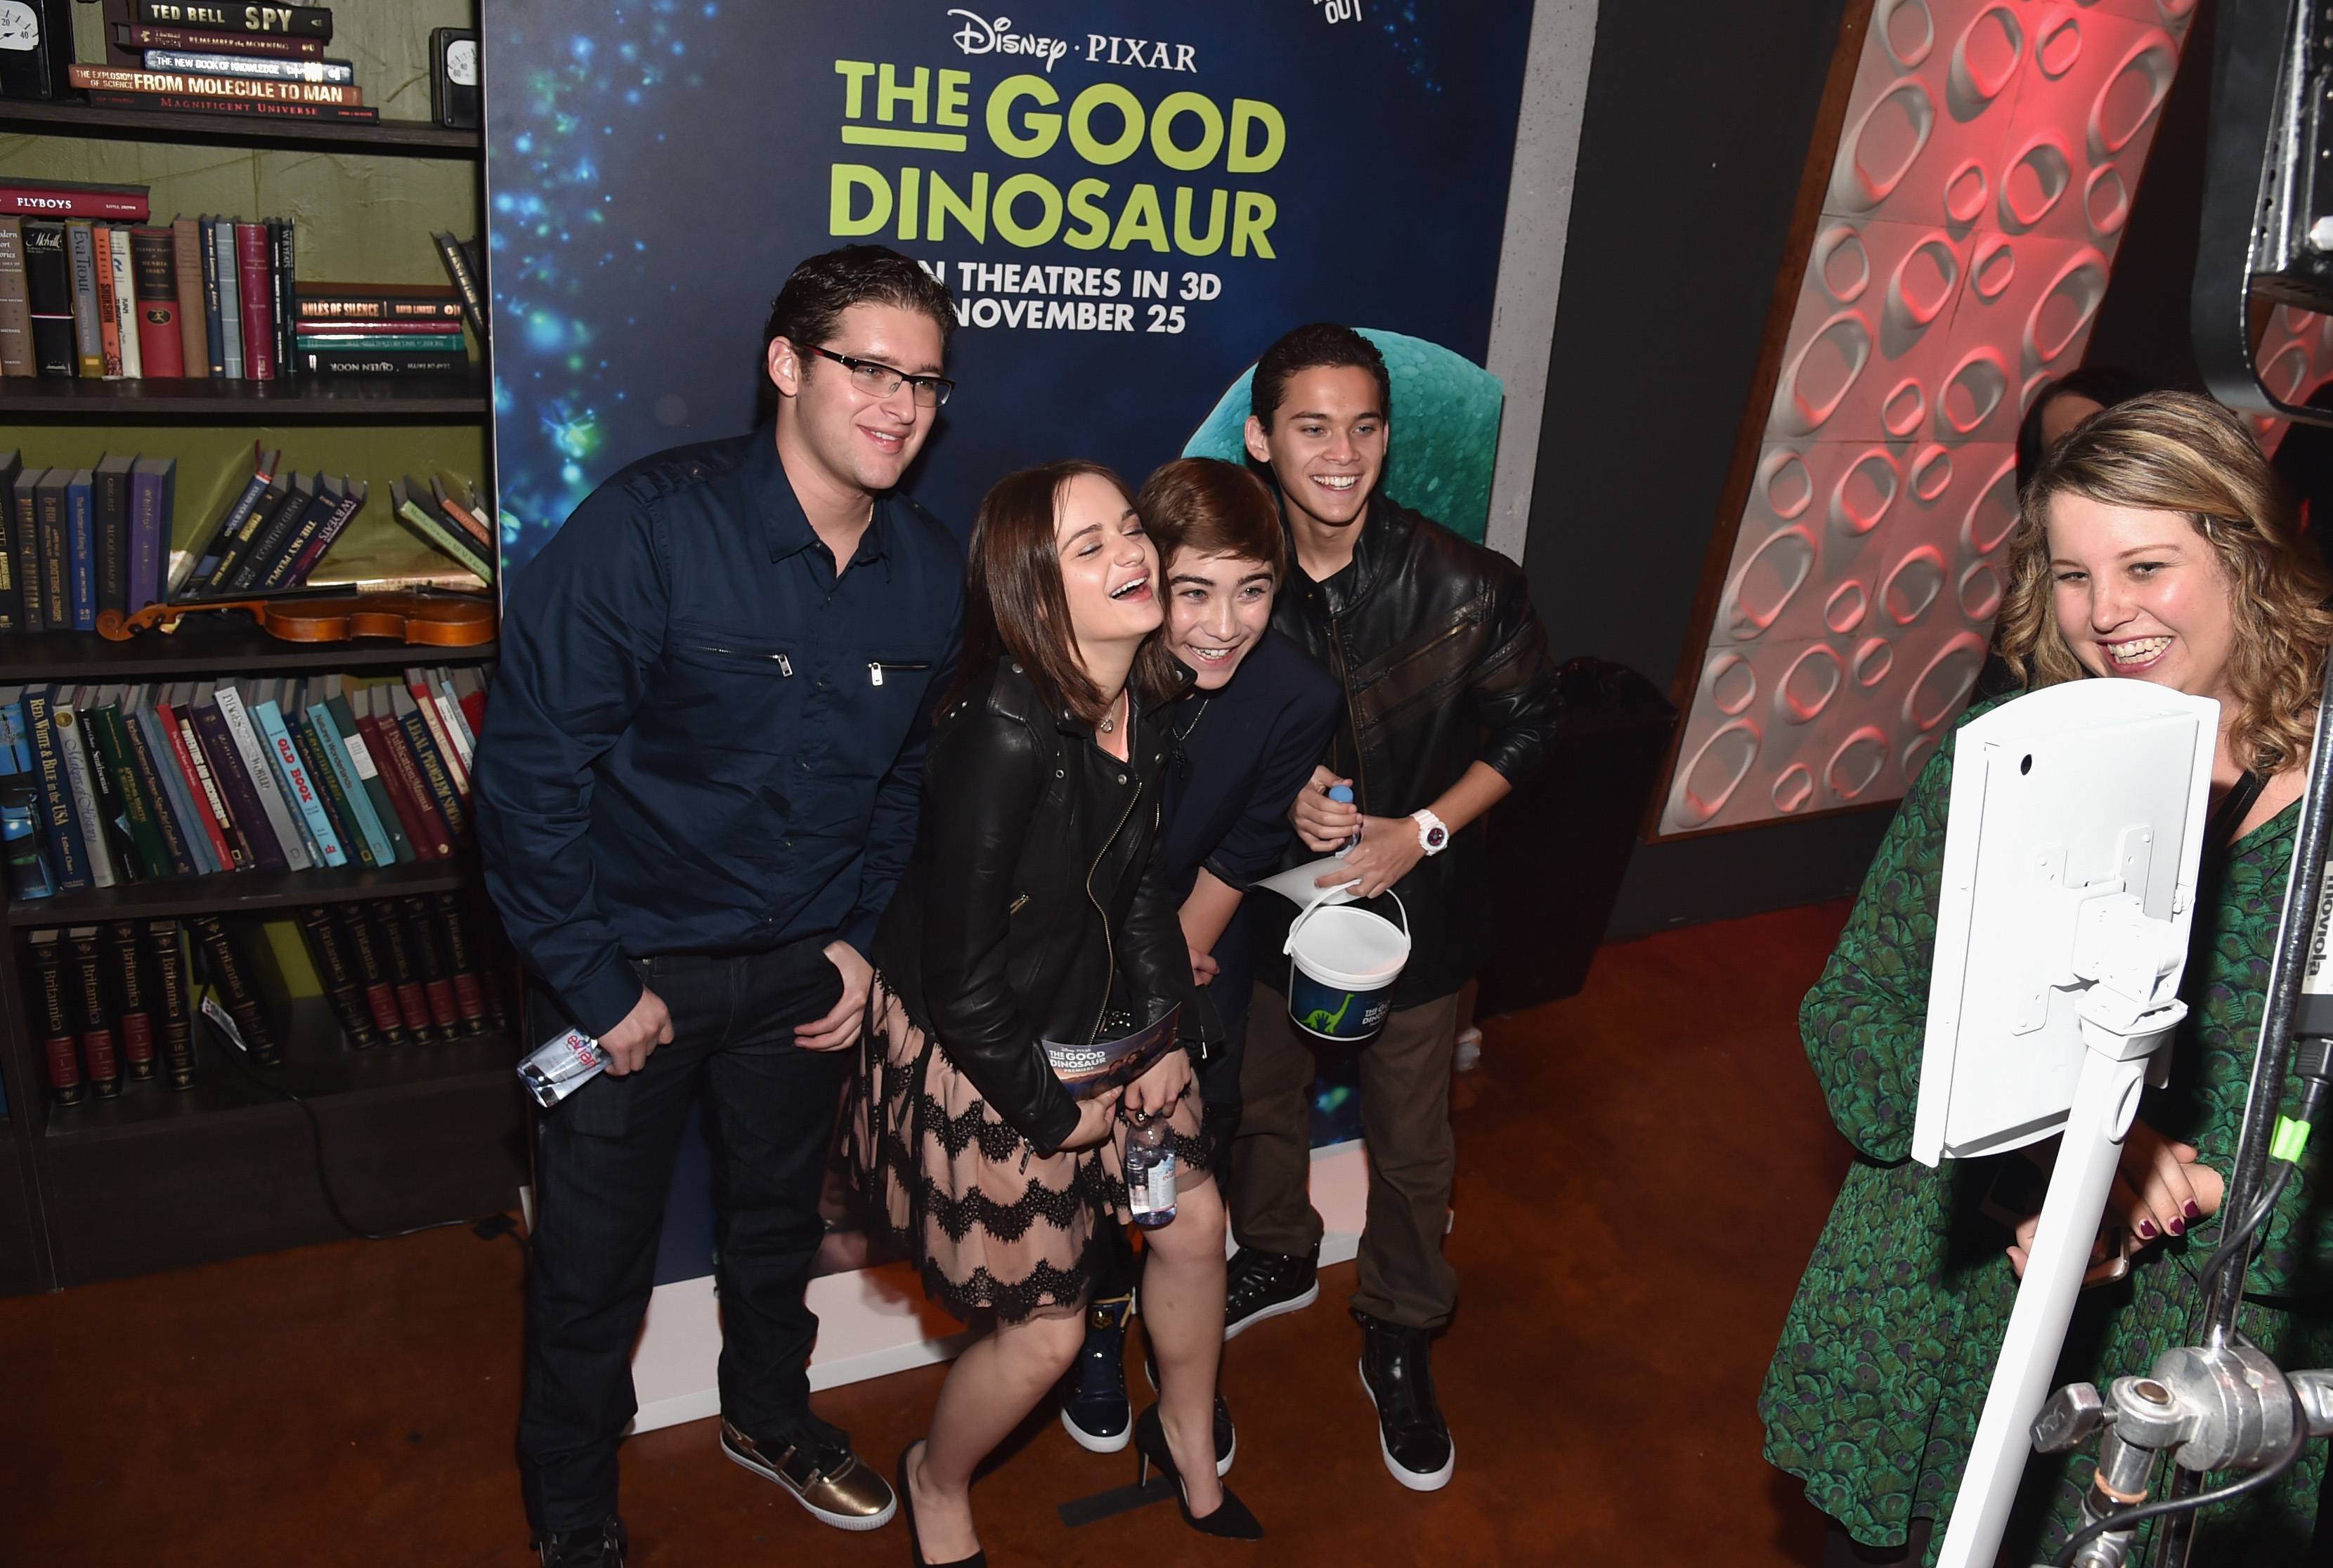 HOLLYWOOD, CA - NOVEMBER 17: Actors Joey King, Raymond Ochoa (center) and guests attend the World Premiere Of Disney-Pixar's THE GOOD DINOSAUR at the El Capitan Theatre on November 17, 2015 in Hollywood, California. (Photo by Alberto E. Rodriguez/Getty Images for Disney) *** Local Caption *** Joey King; Raymond Ochoa